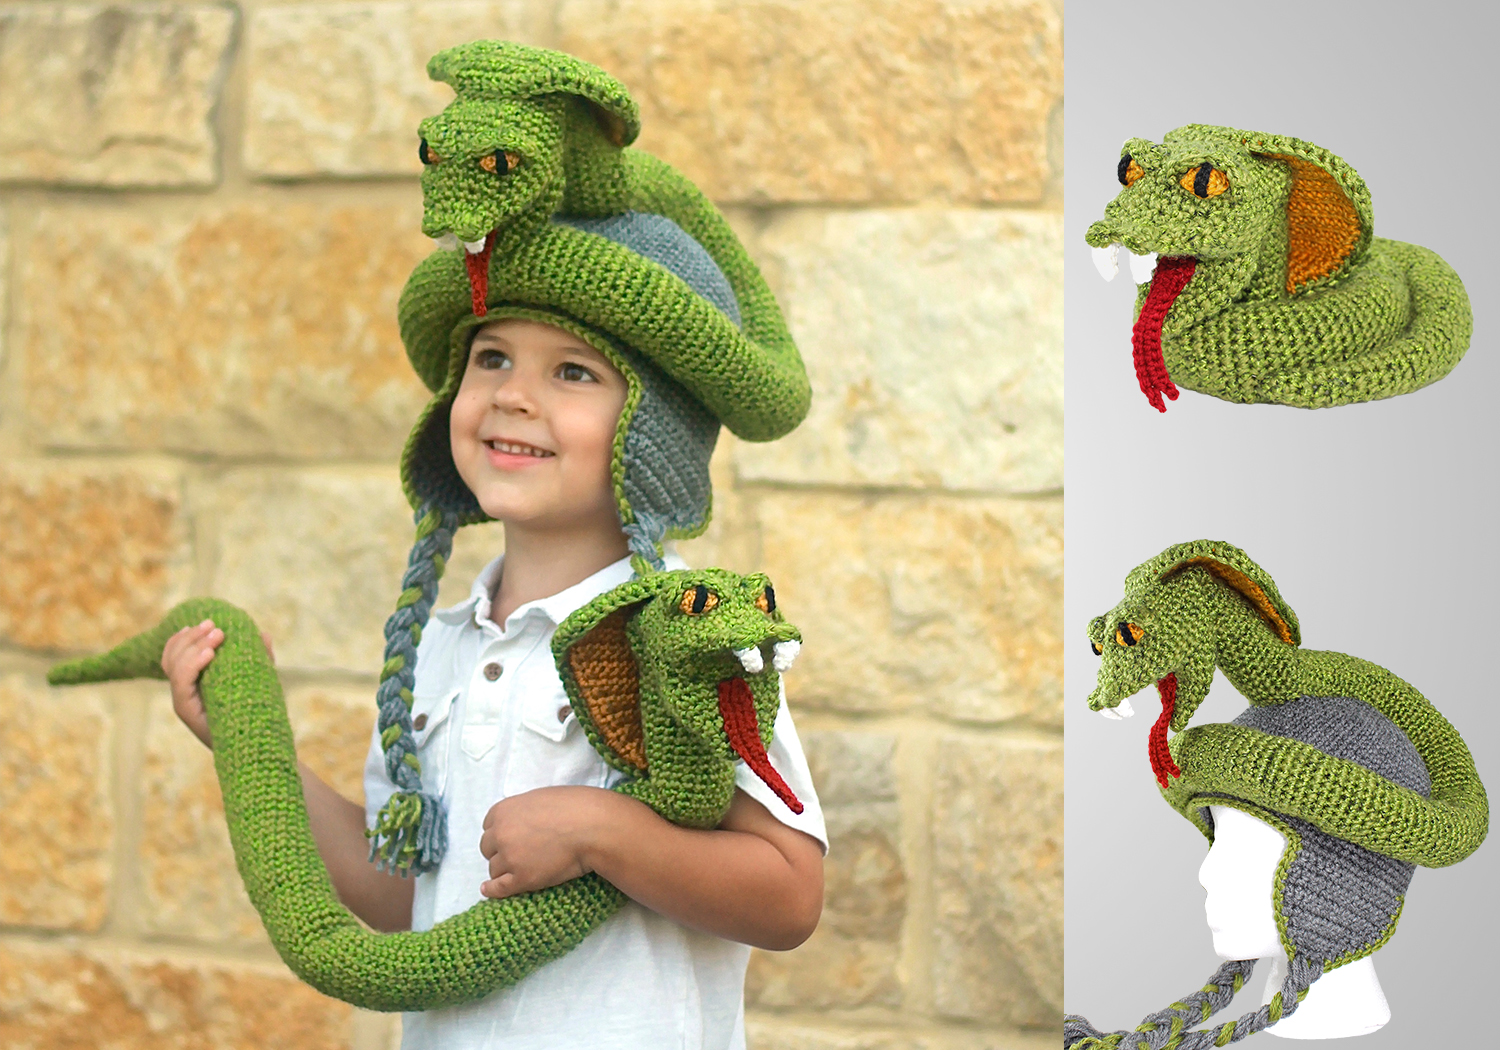 unique cobra hat and toy